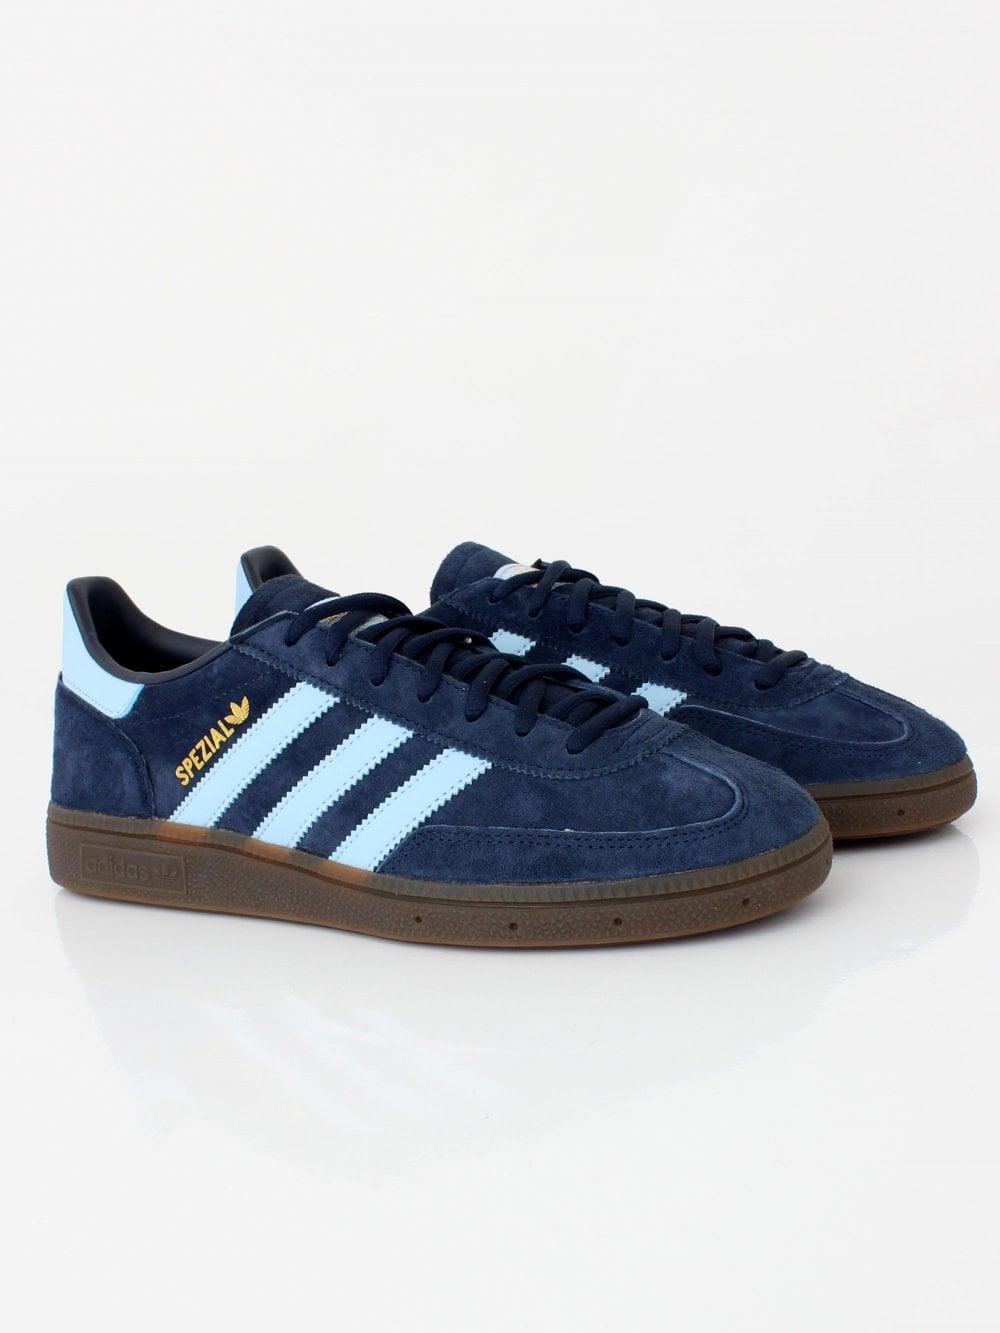 4999de6593 adidas Originals Handball Spezials in Navy/Sky/Gum